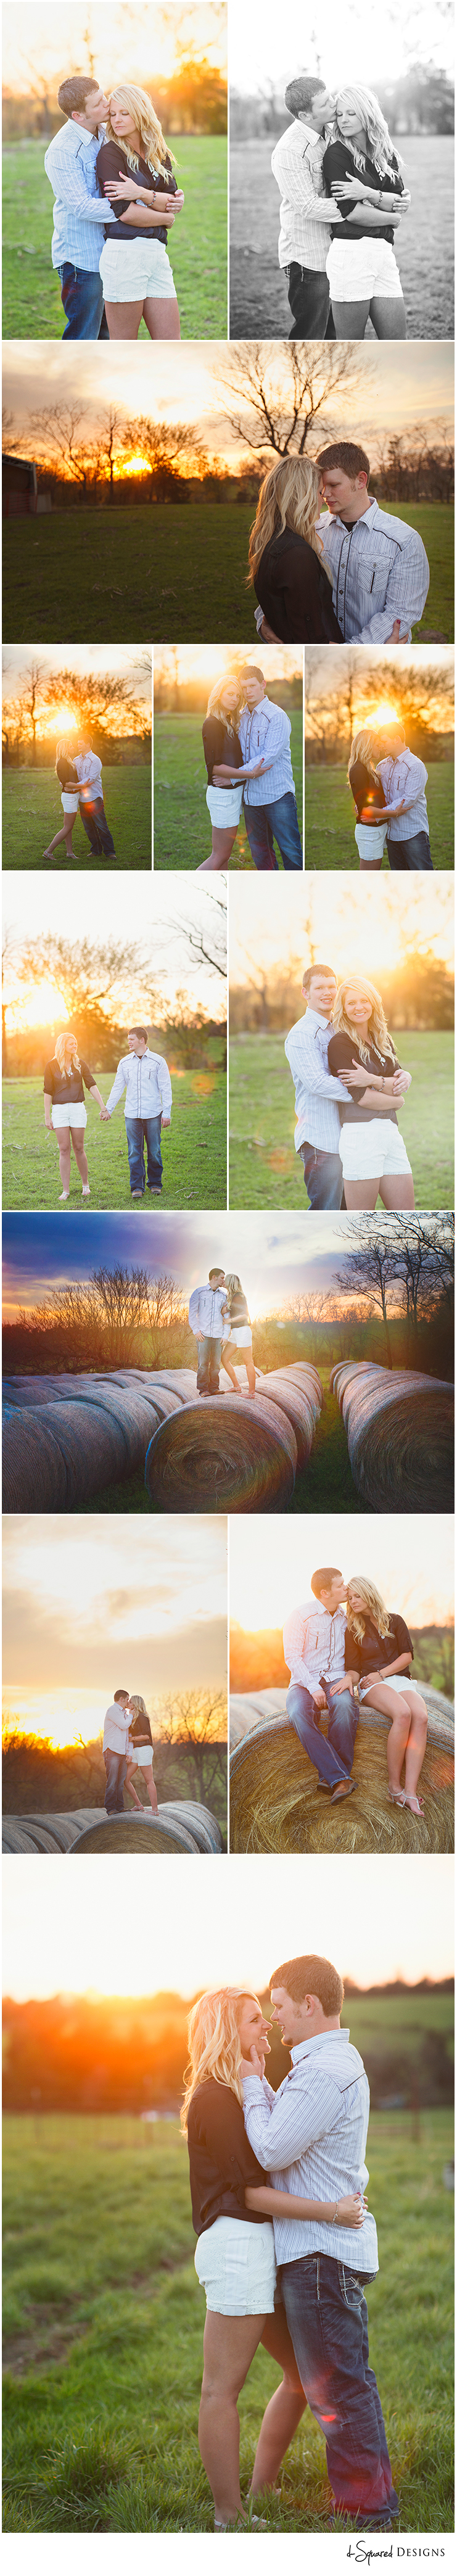 d-Squared Designs Missouri Engagement Photography. Sunset engagement. Farm engagement session. Couple in love. Beautiful engaged couple on the farm.